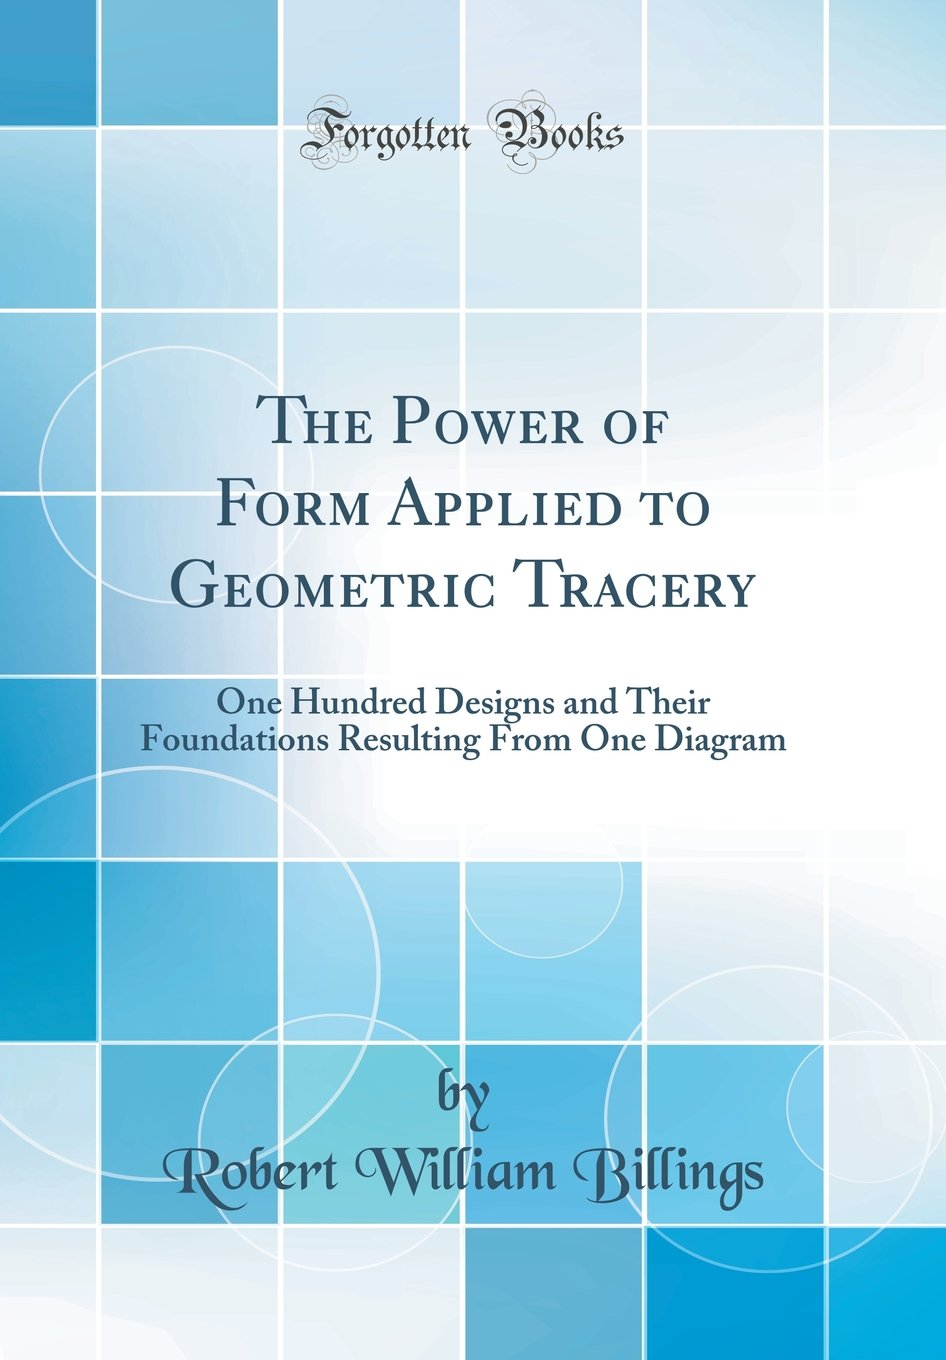 The Power of Form Applied to Geometric Tracery: One Hundred Designs and Their Foundations Resulting from One Diagram (Classic Reprint) ebook